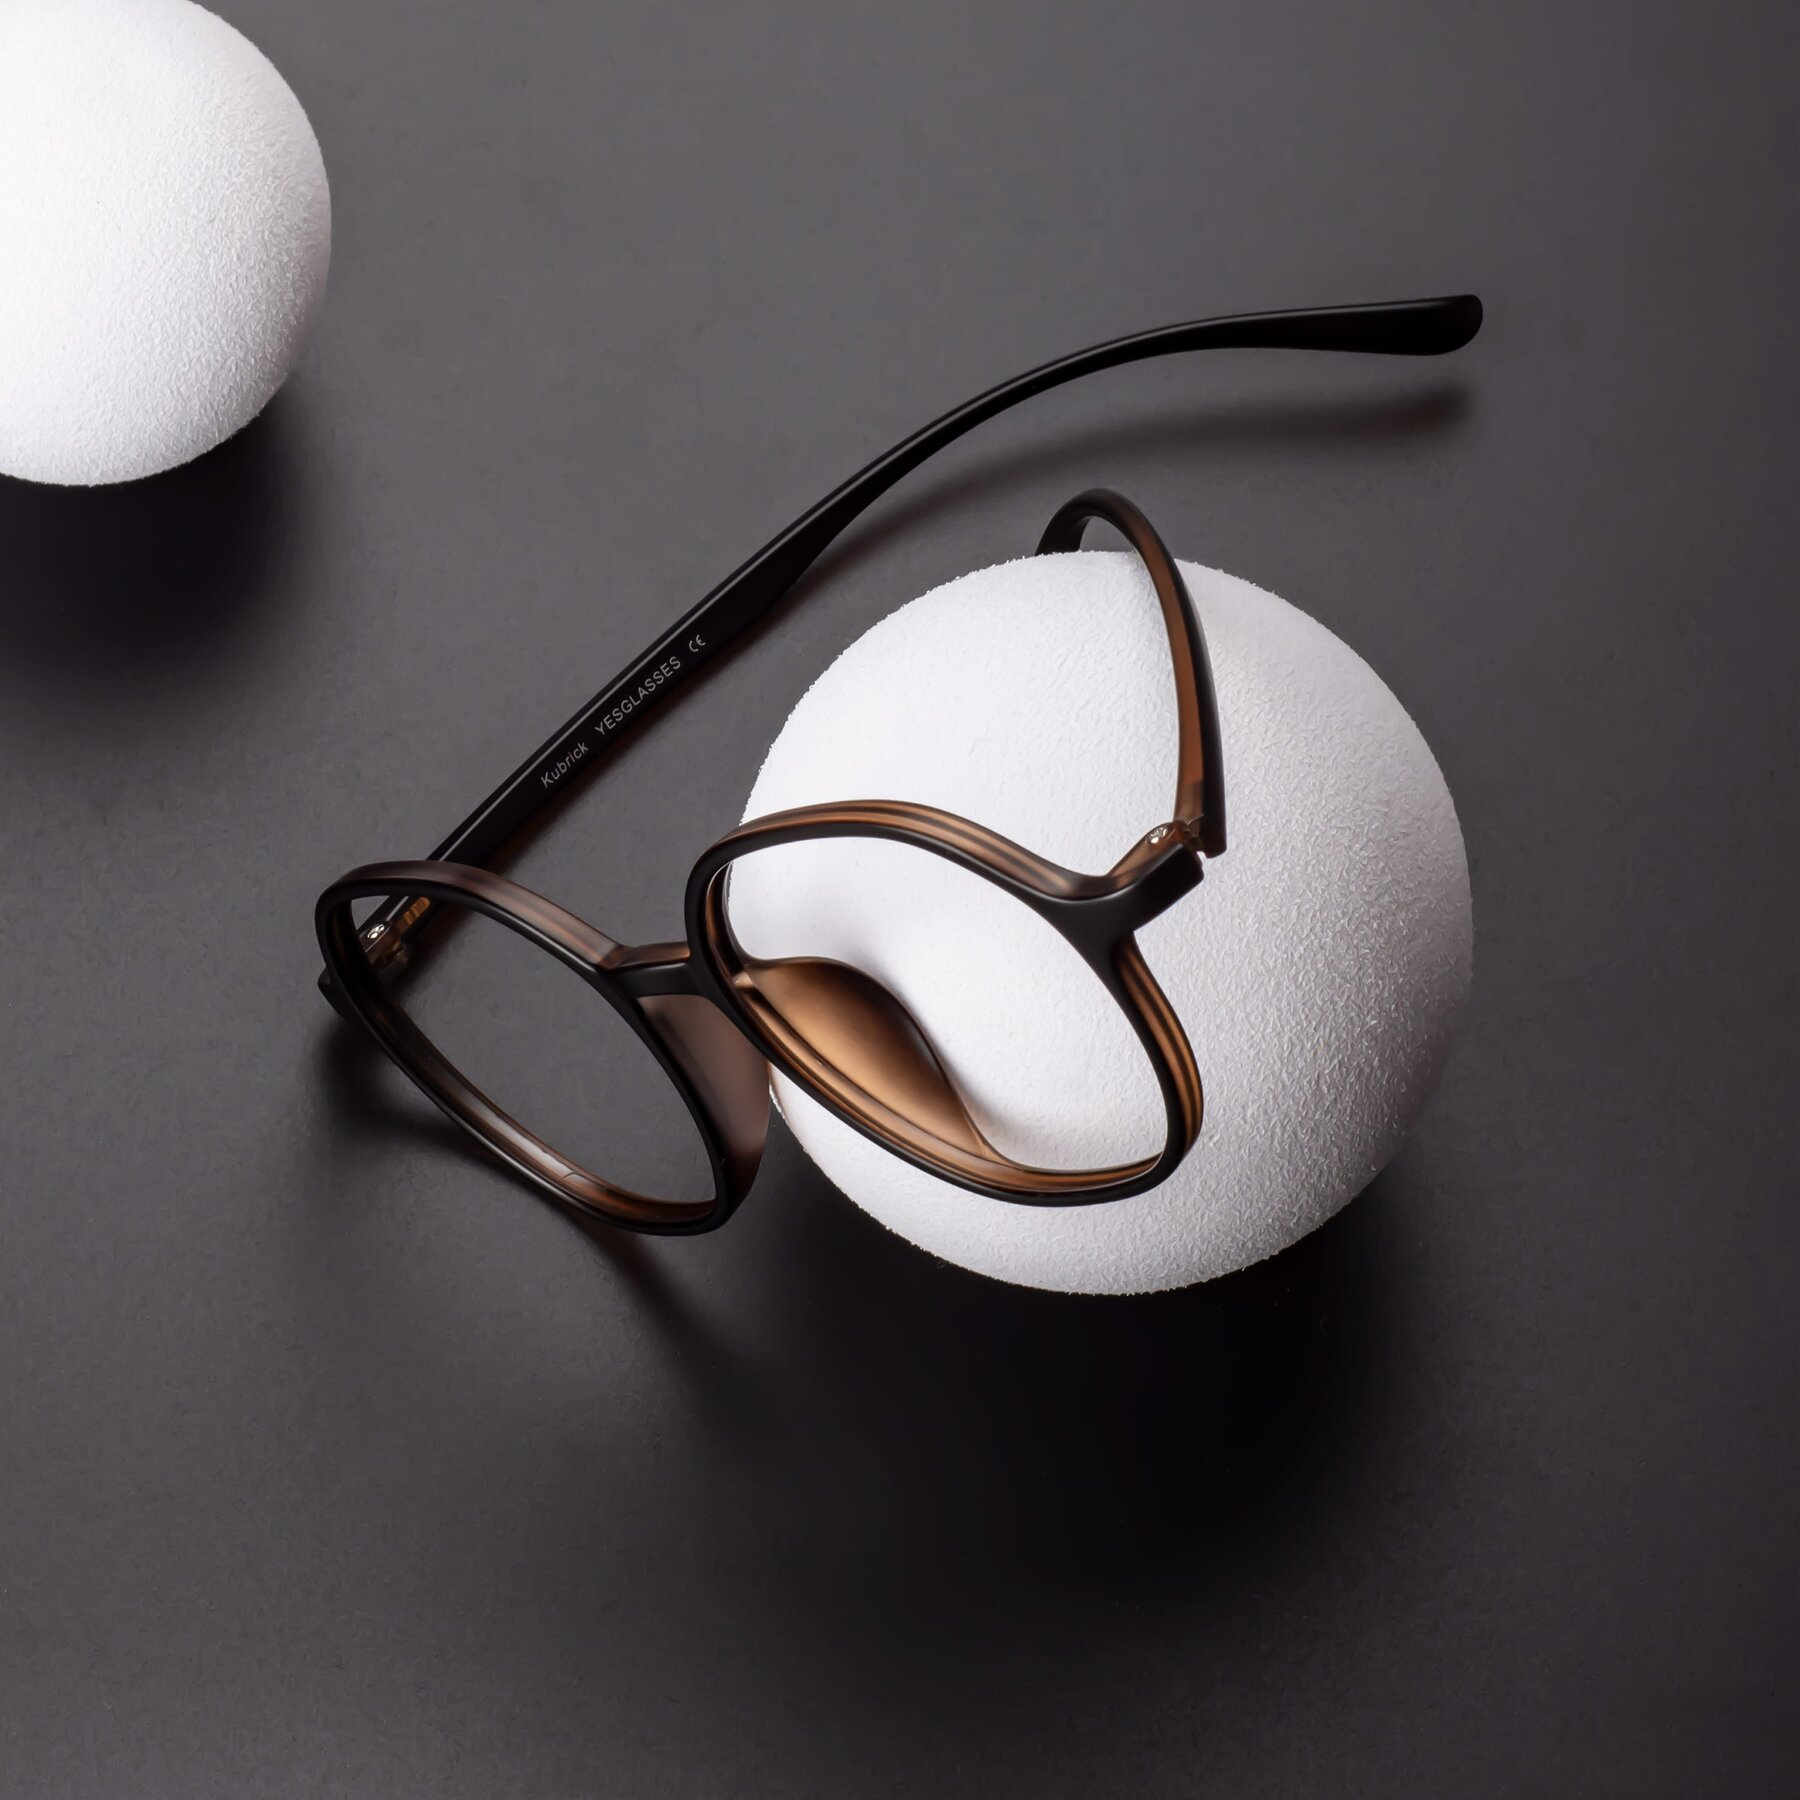 Lifestyle photography #1 of Kubrick in Black-Coffee with Clear Eyeglass Lenses